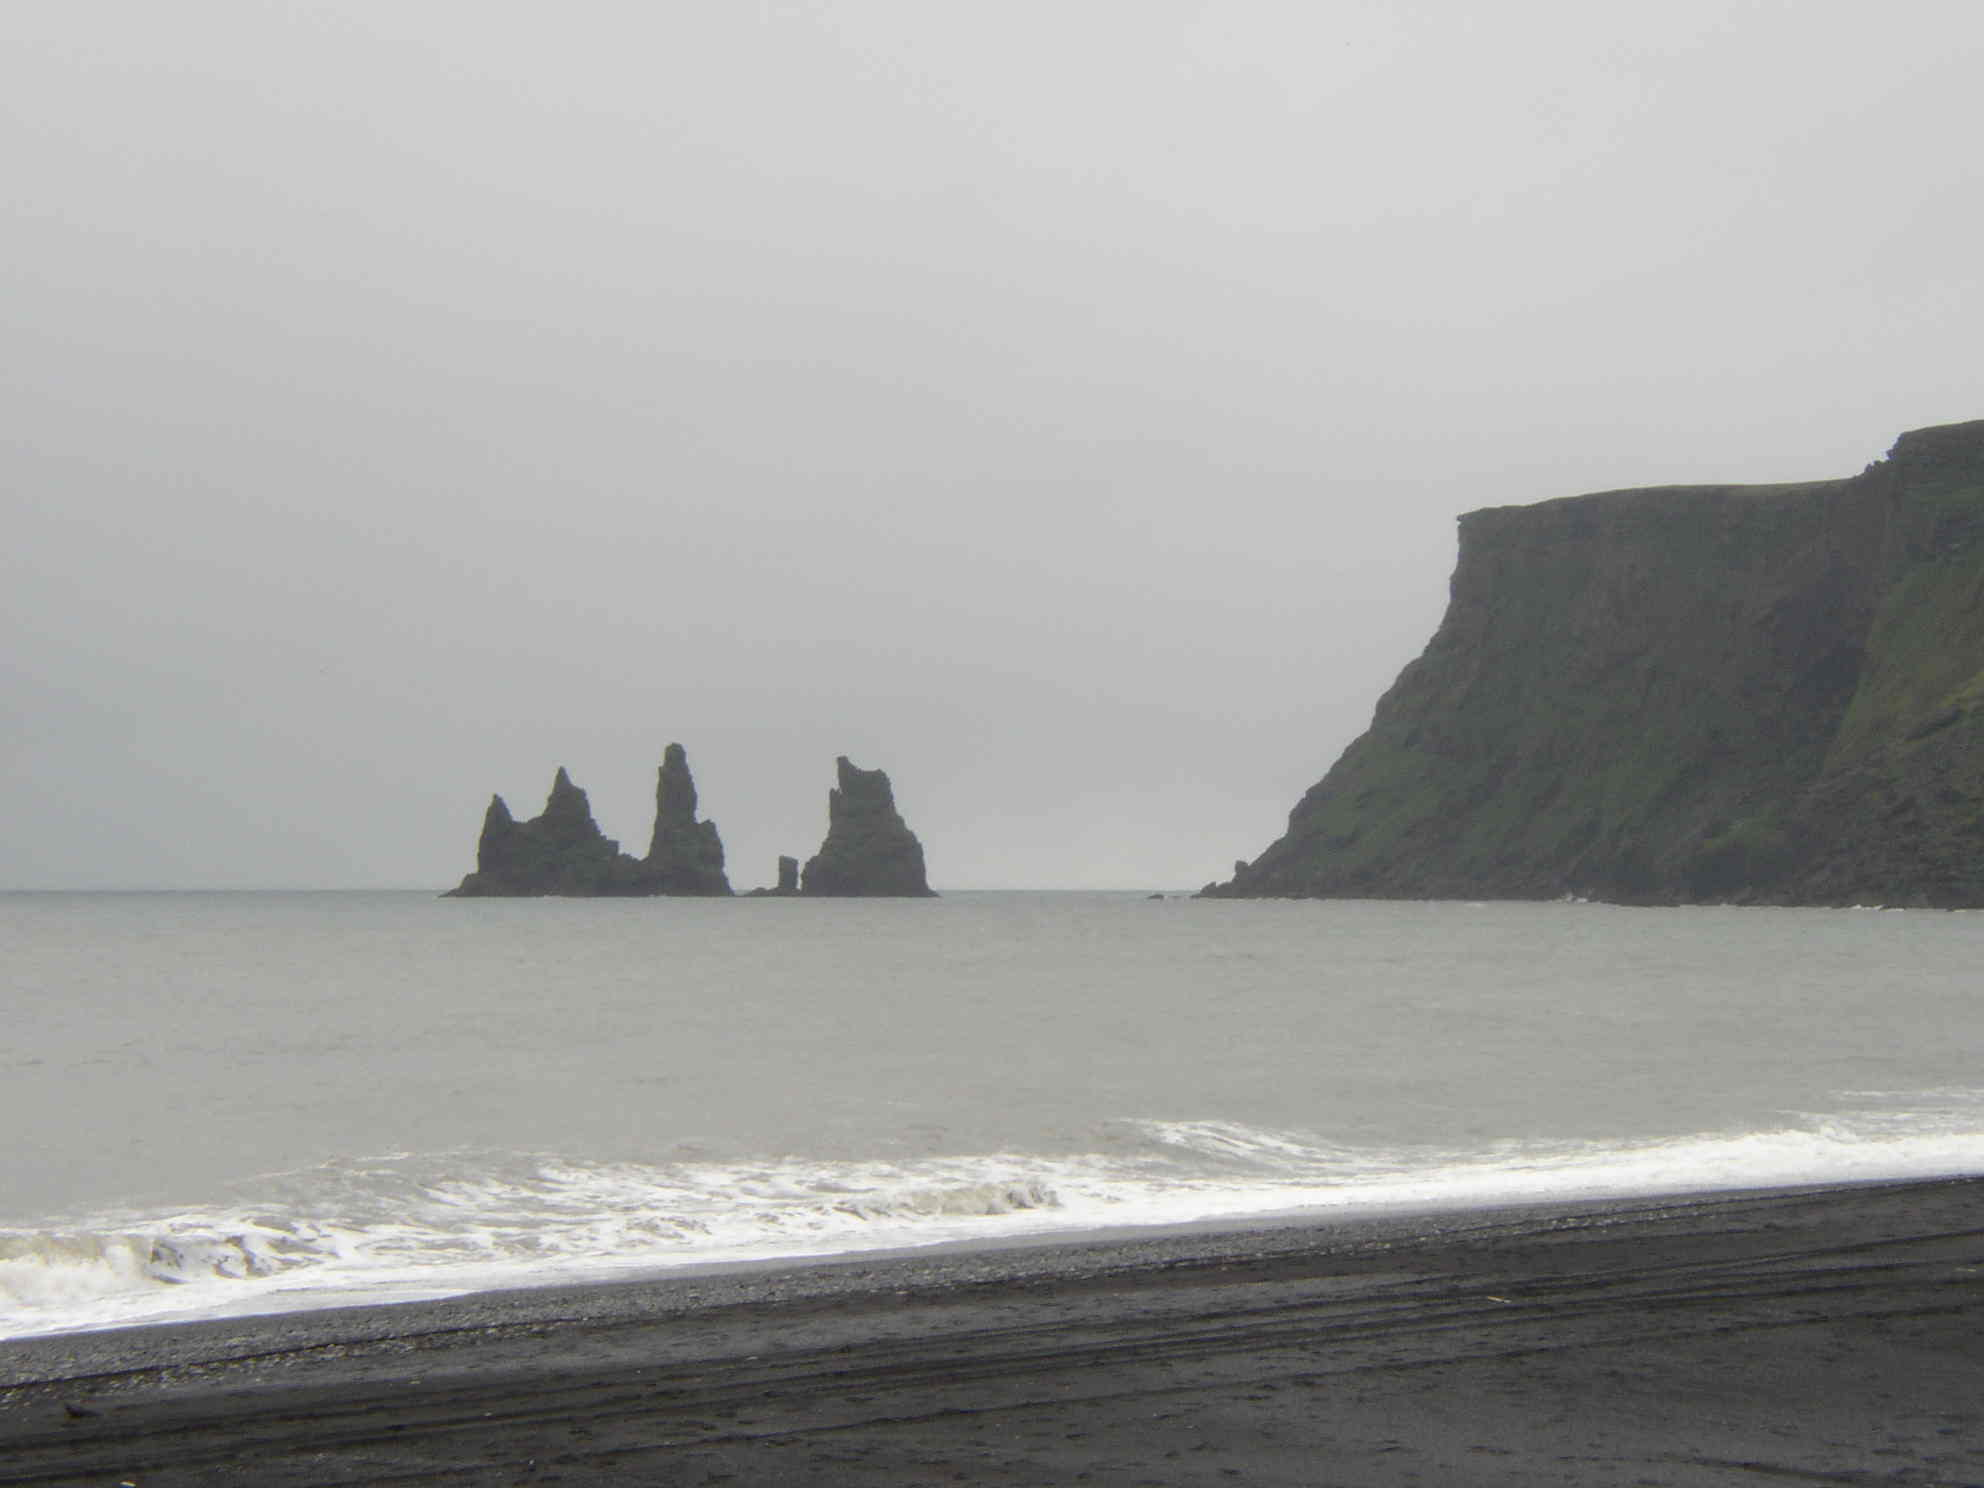 Rock formations off the coast of Vik, Iceland